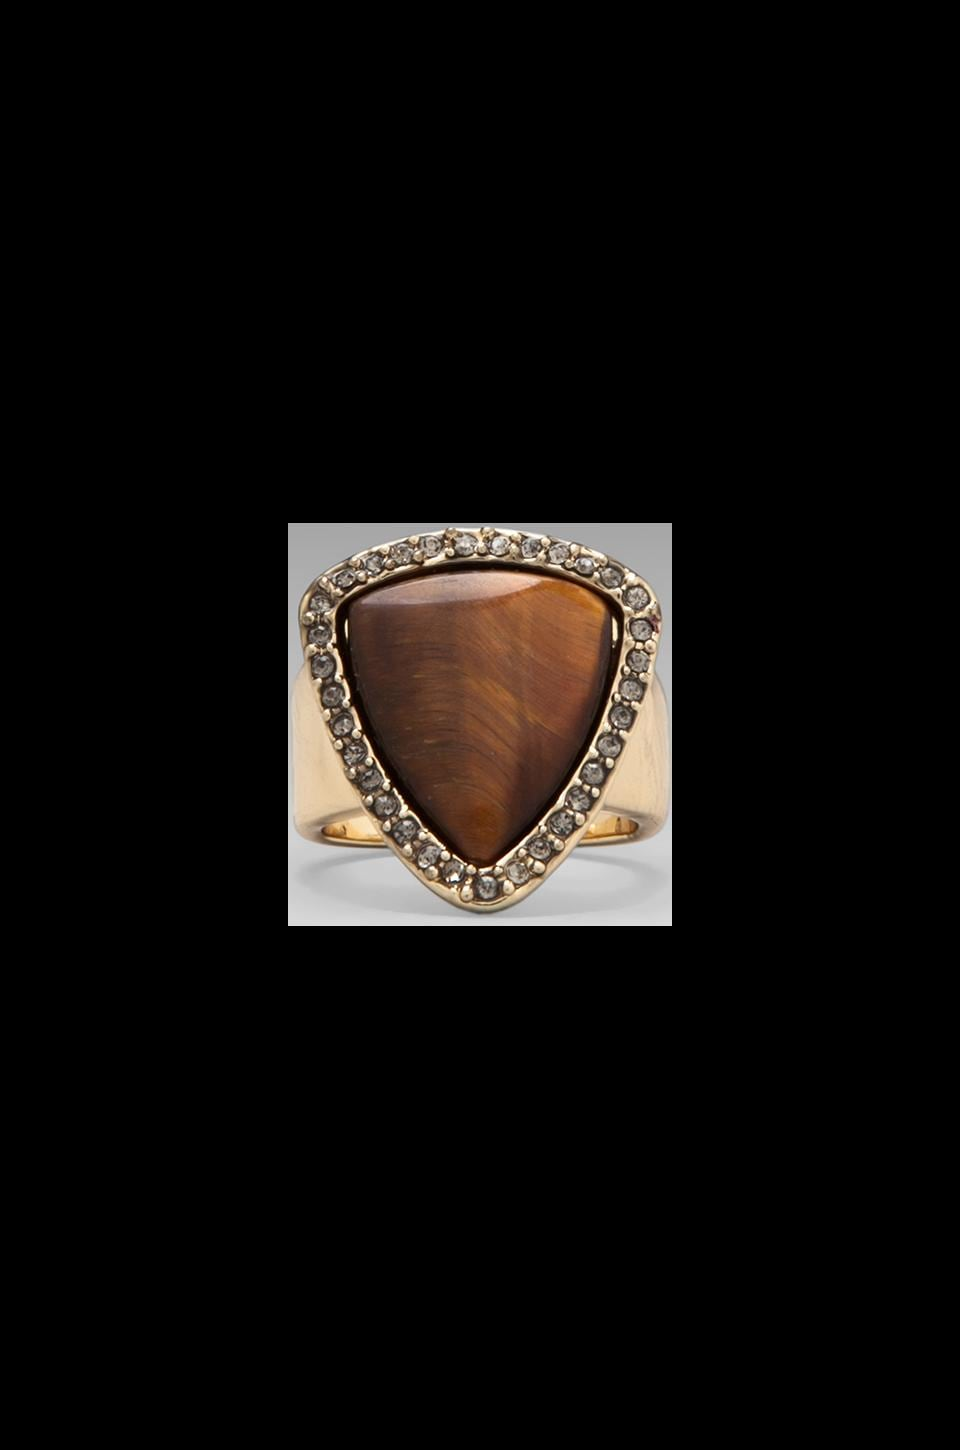 House of Harlow 1960 House of Harlow Band Ring in Gold/Tiger's Eye